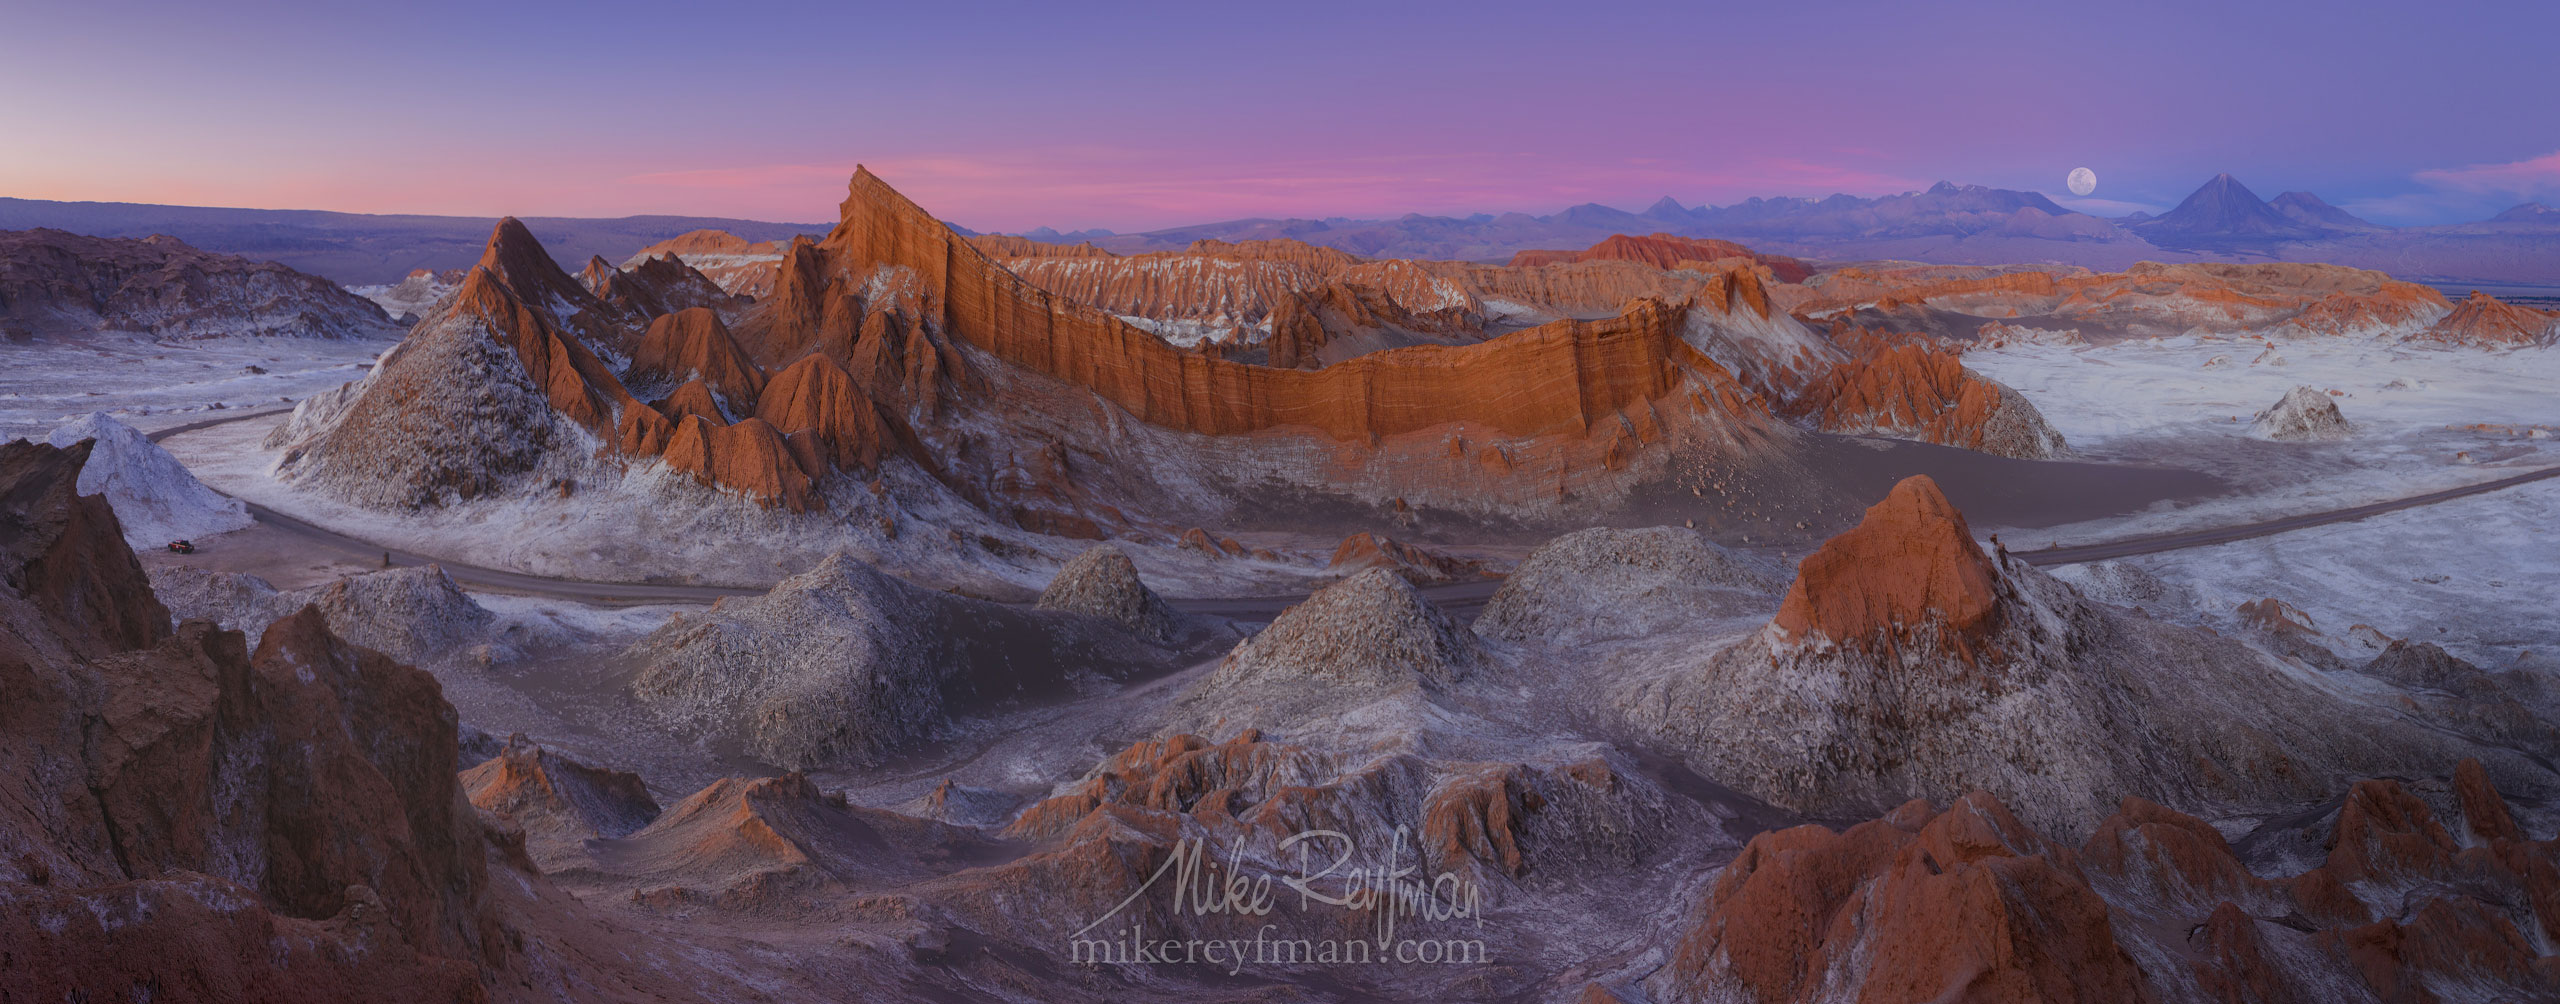 AA1-D1D8169_77_Pano_1x2.55 - Atacama and Altiplano. The Driest Desert and The High Plain - Mike Reyfman Photography